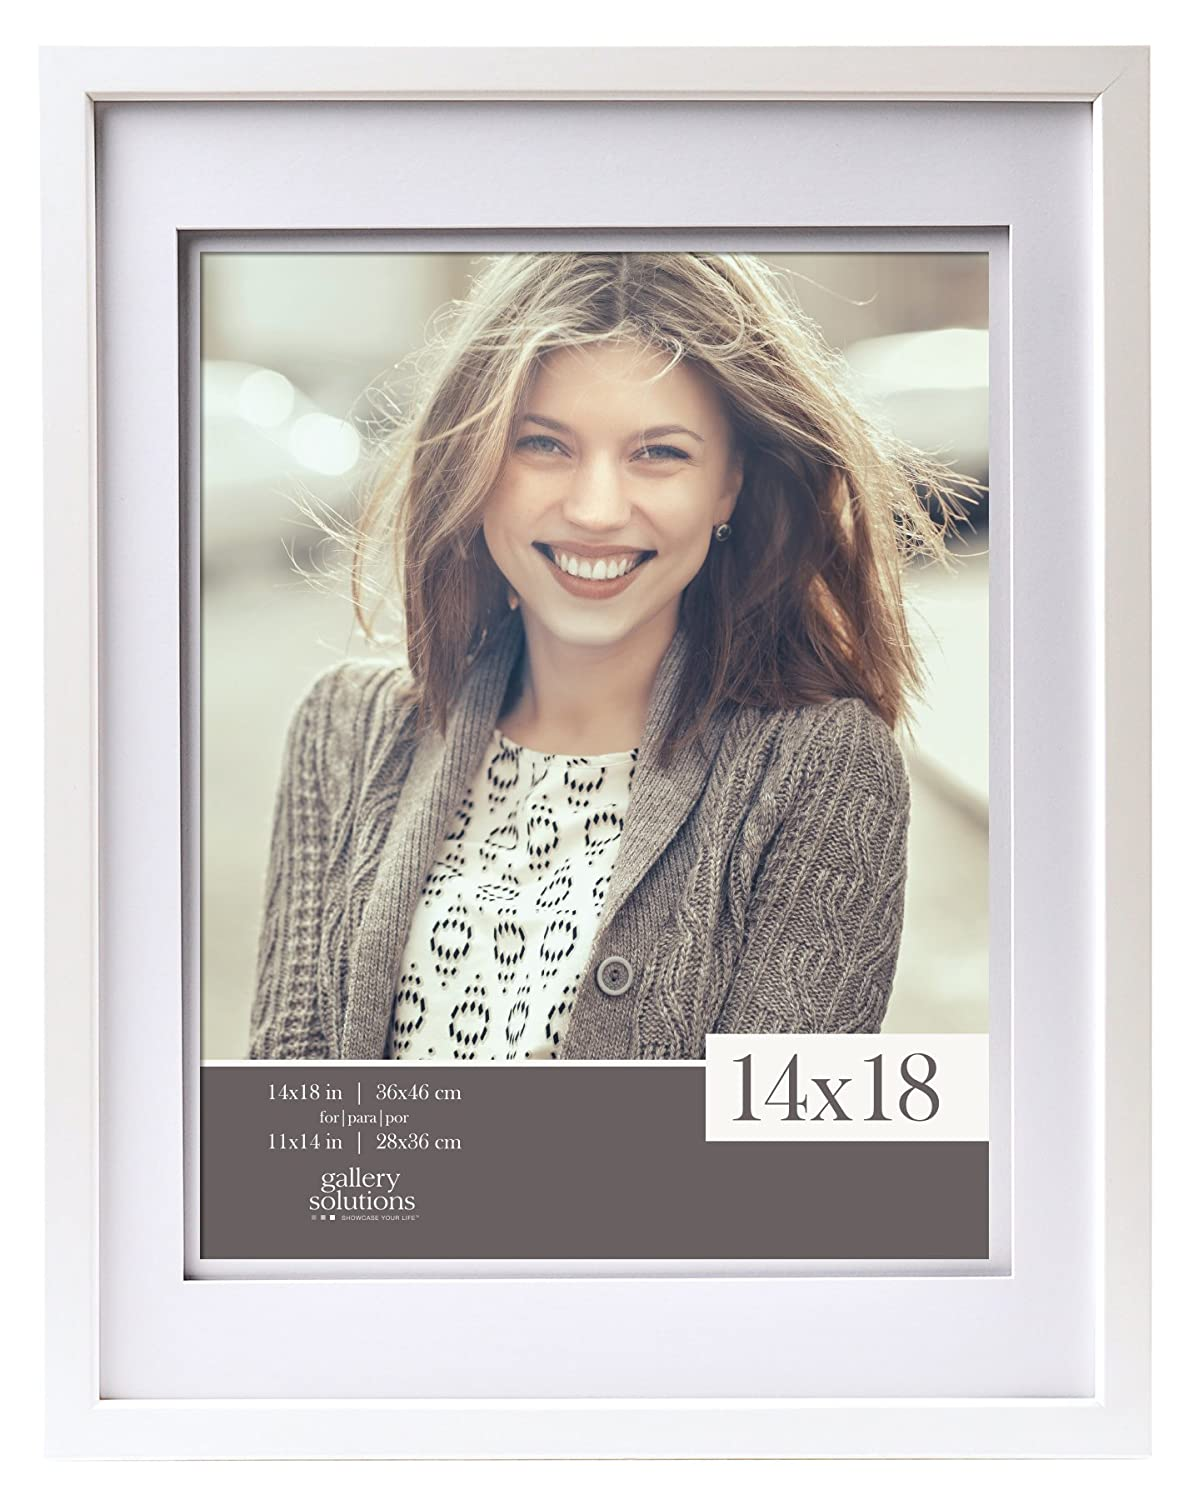 Gallery Solutions 14x18 Wood Wall Frame with Double White Mat for 11x14 Image